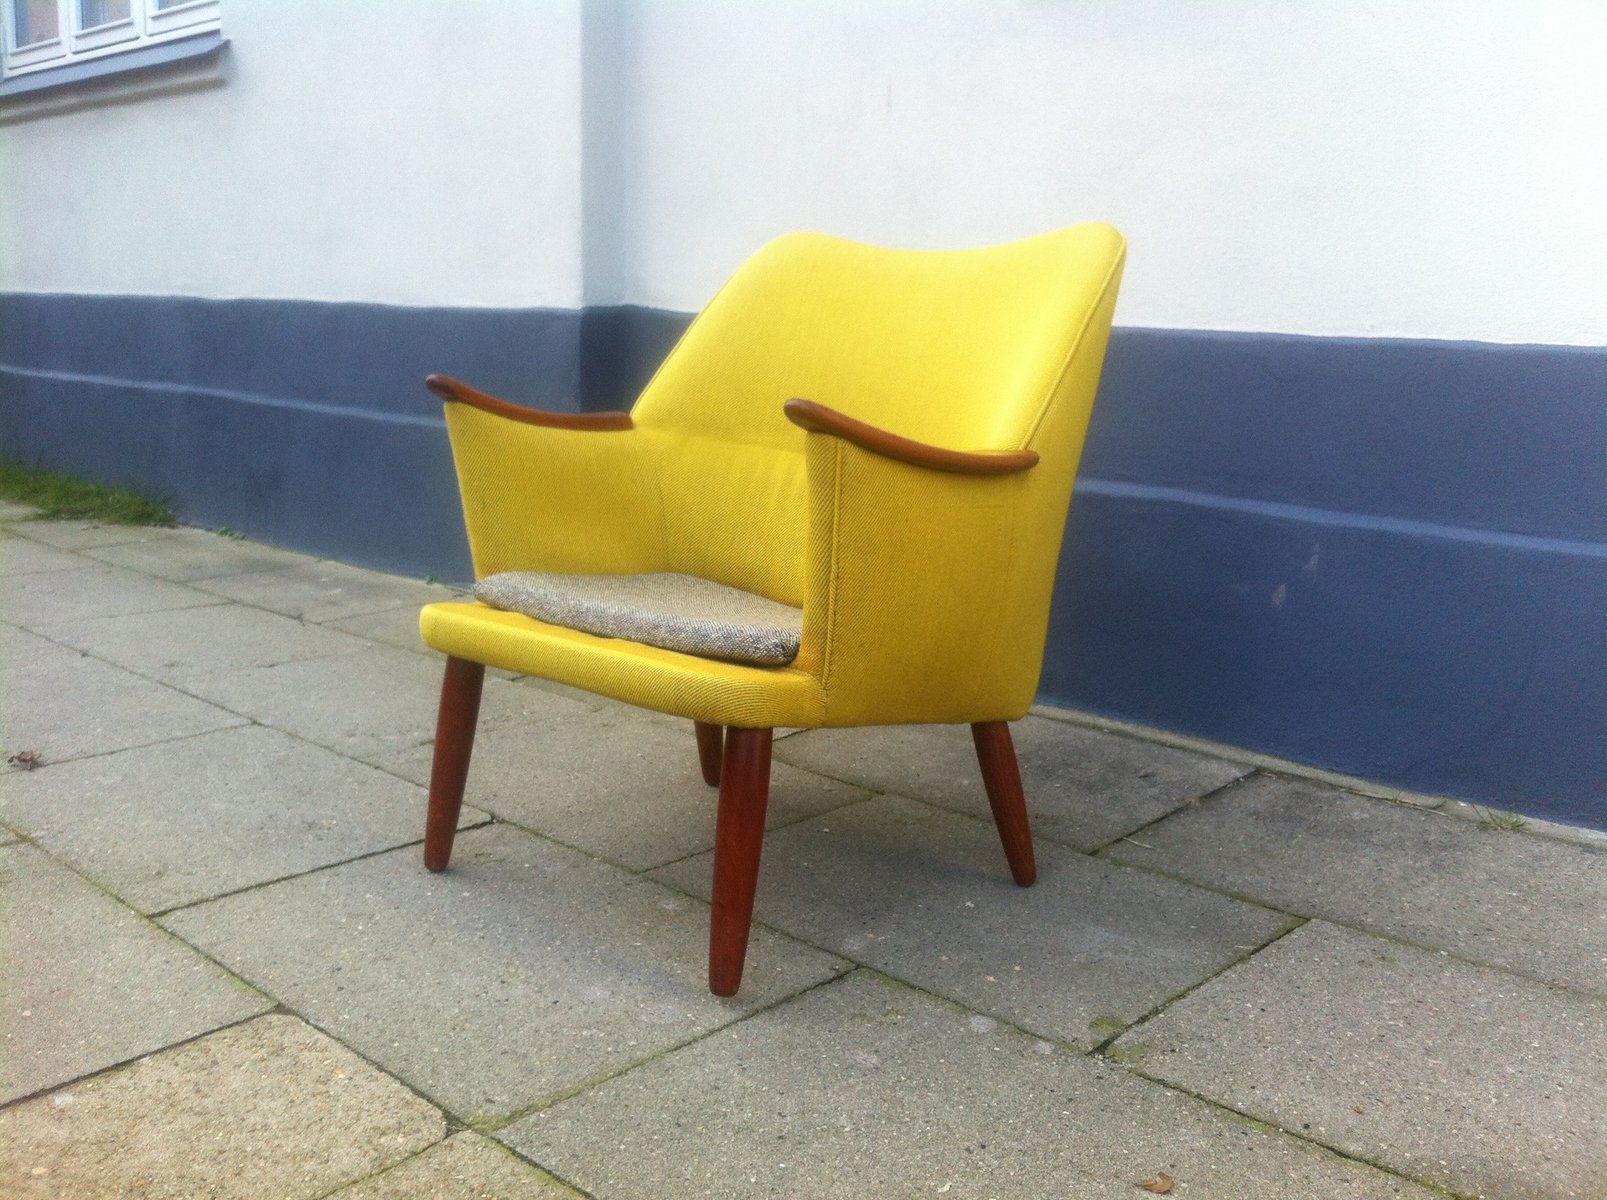 danish mid century modern easy chair in yellow wool with teak accents 1950s - Mid Century Modern Furniture Of The 1950s